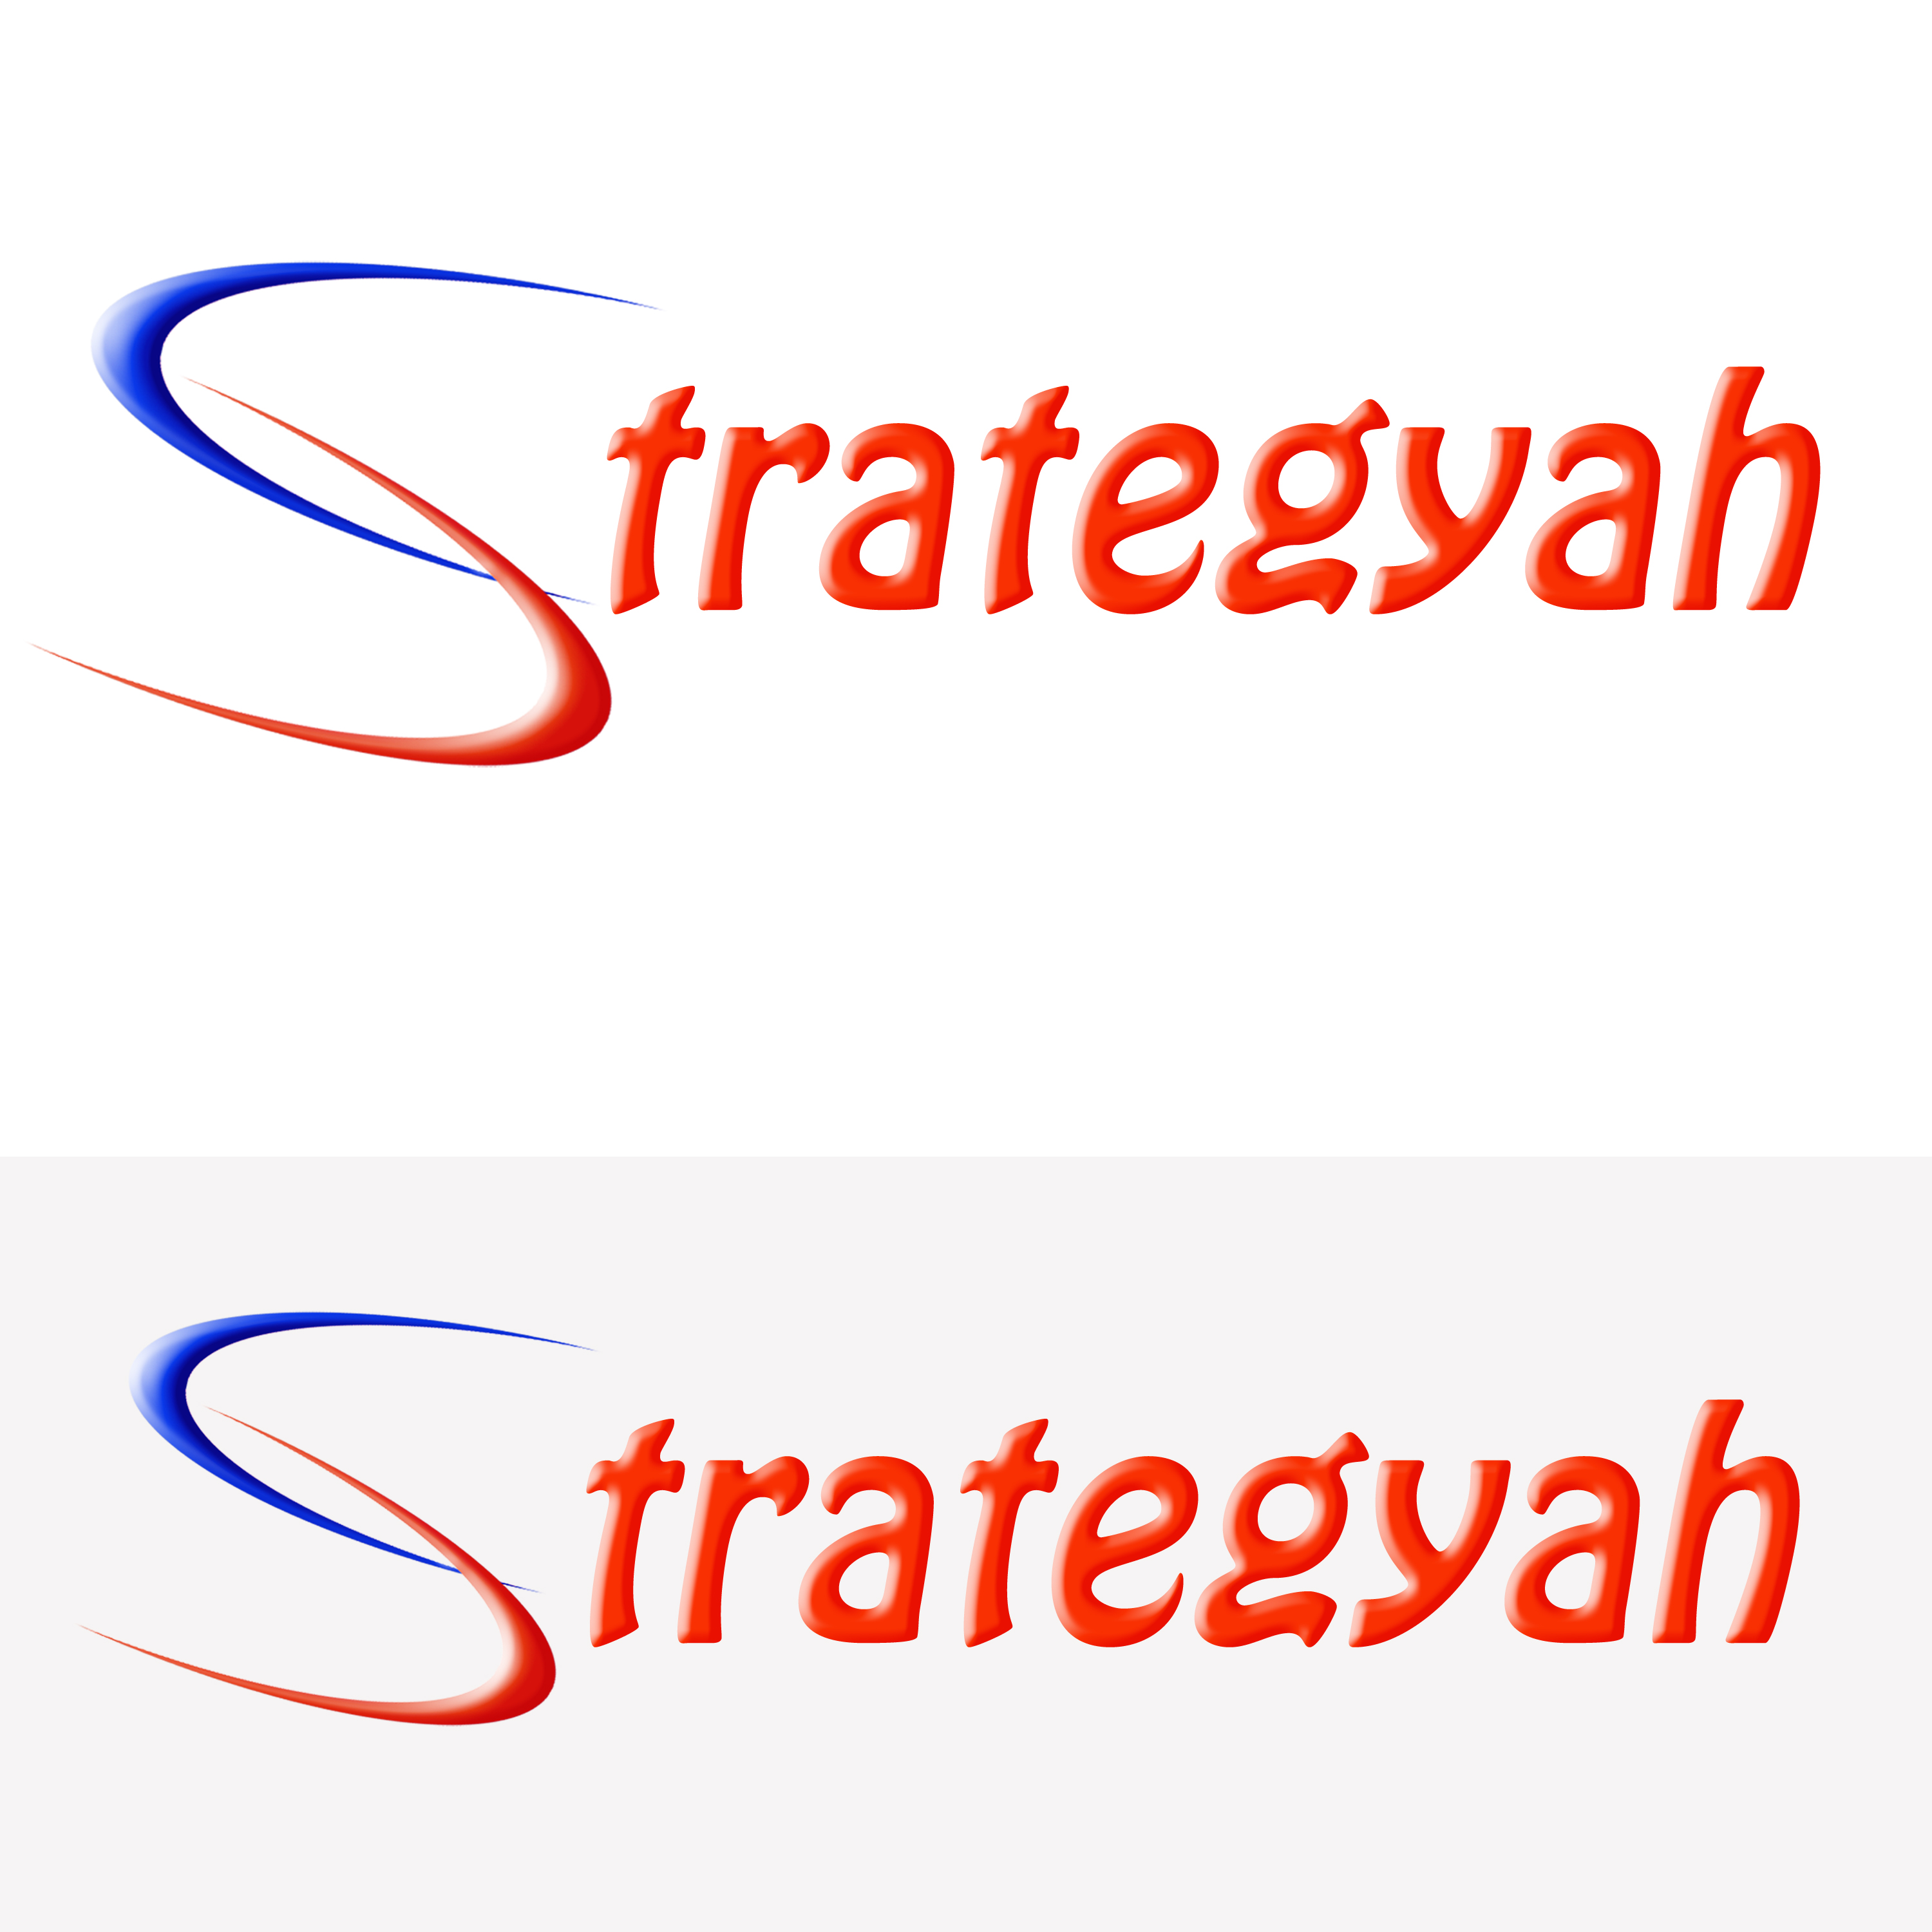 Logo Design by Roberto Sibbaluca - Entry No. 93 in the Logo Design Contest Creative Logo Design for Strategyah.